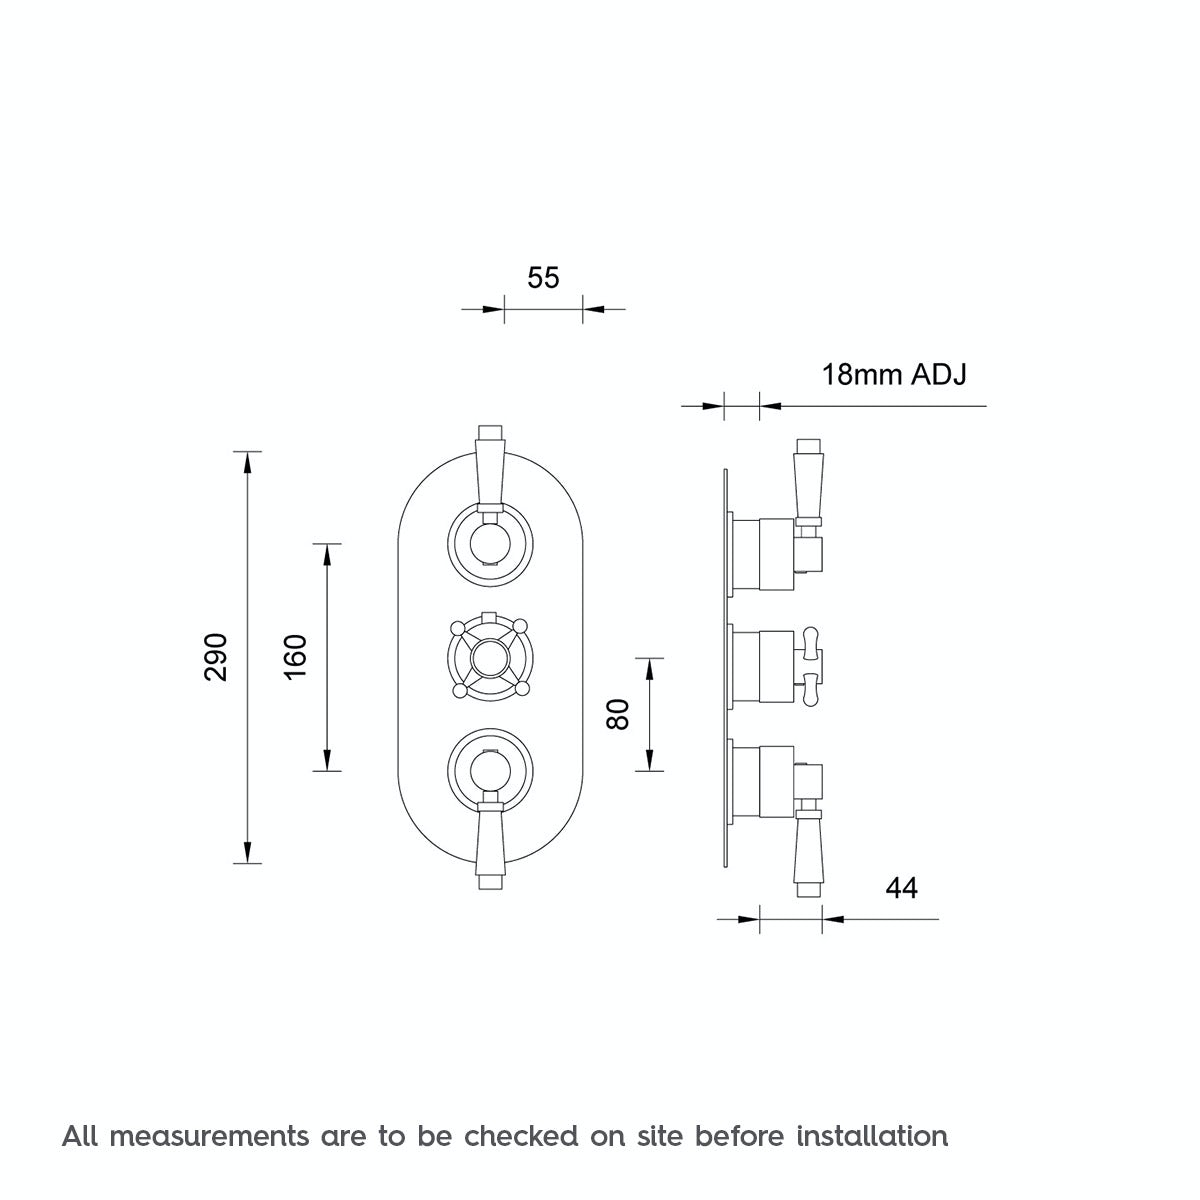 Dimensions for The Bath Co. Traditional oval triple thermostatic shower valve with diverter